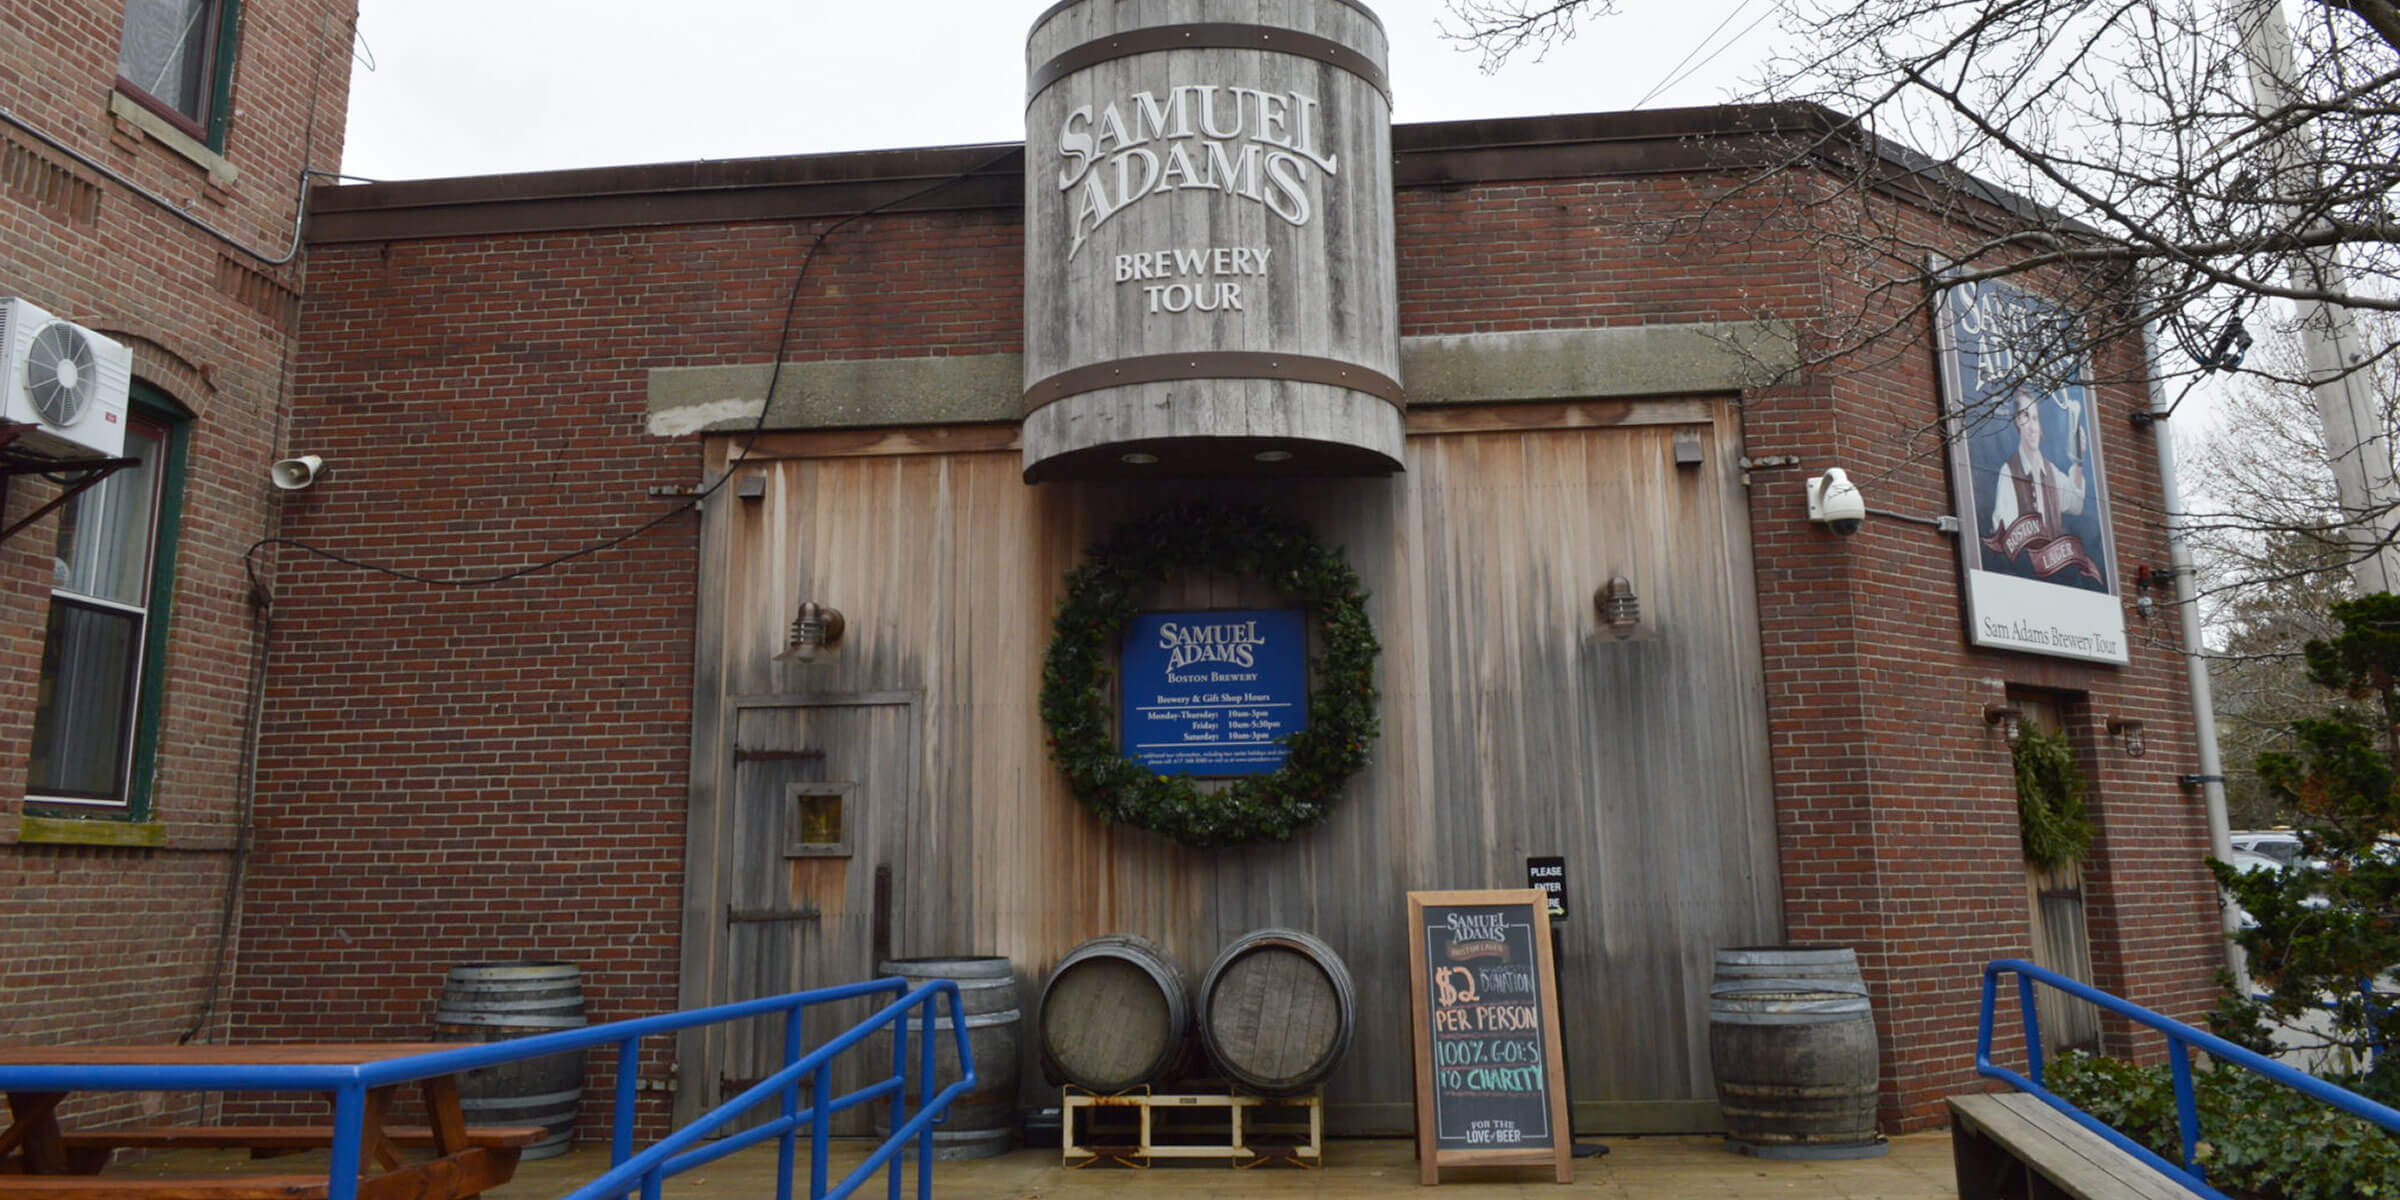 Outside The Boston Brewery where Samuel Adams Beer is Brewed by the Boston Beer Company